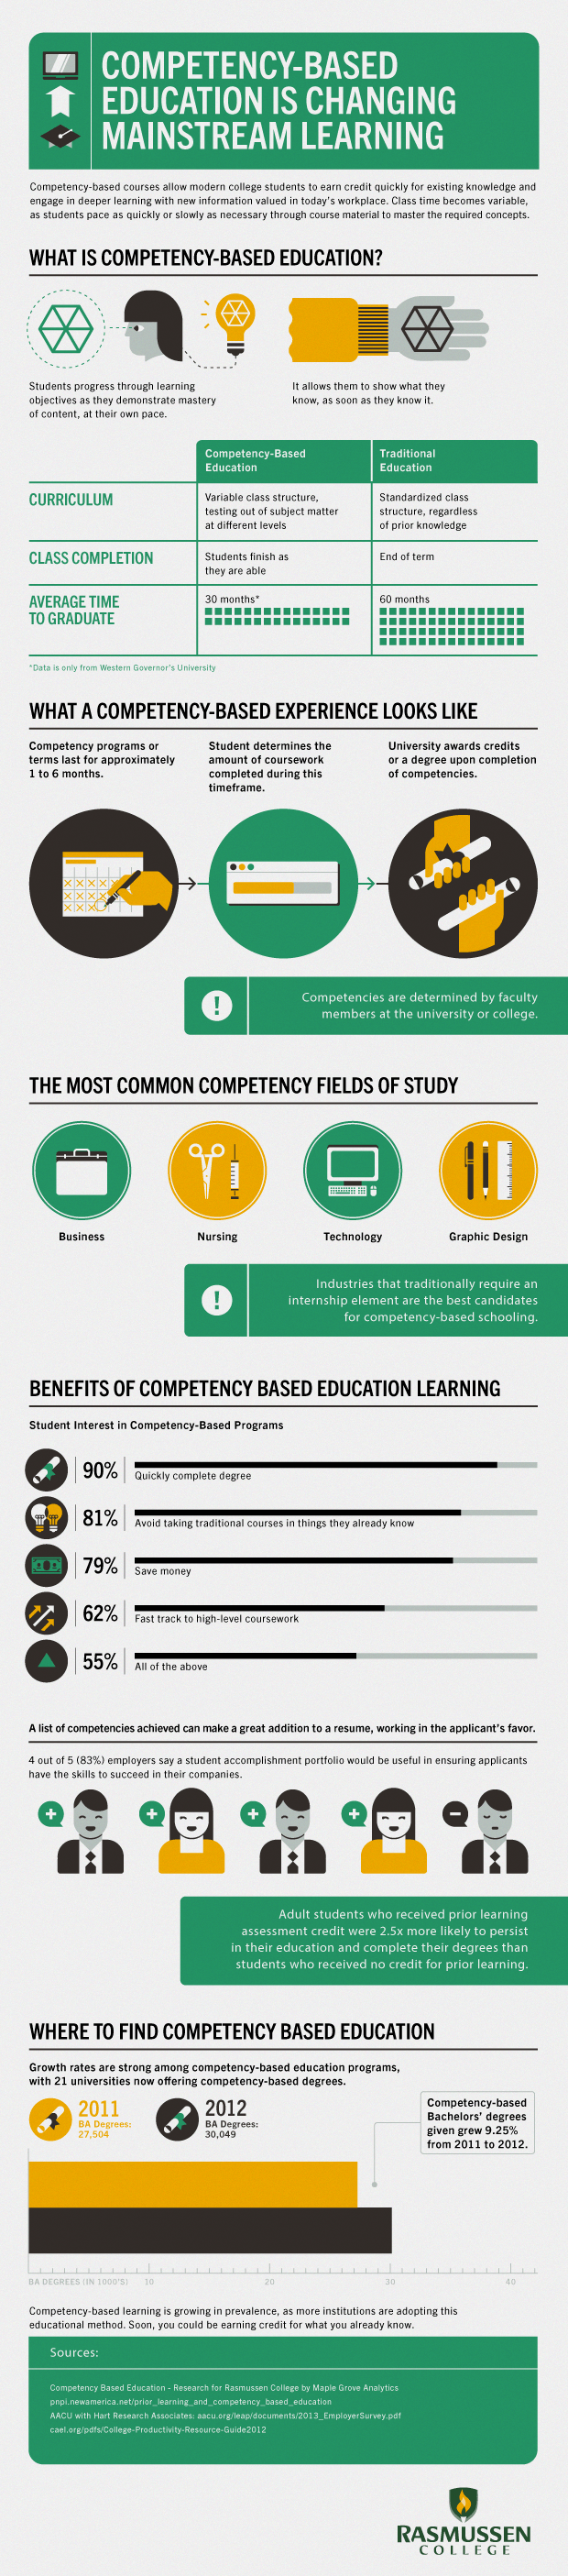 How-Competency-Based-Education-is-Changing-Mainstream-Learning-Infographic